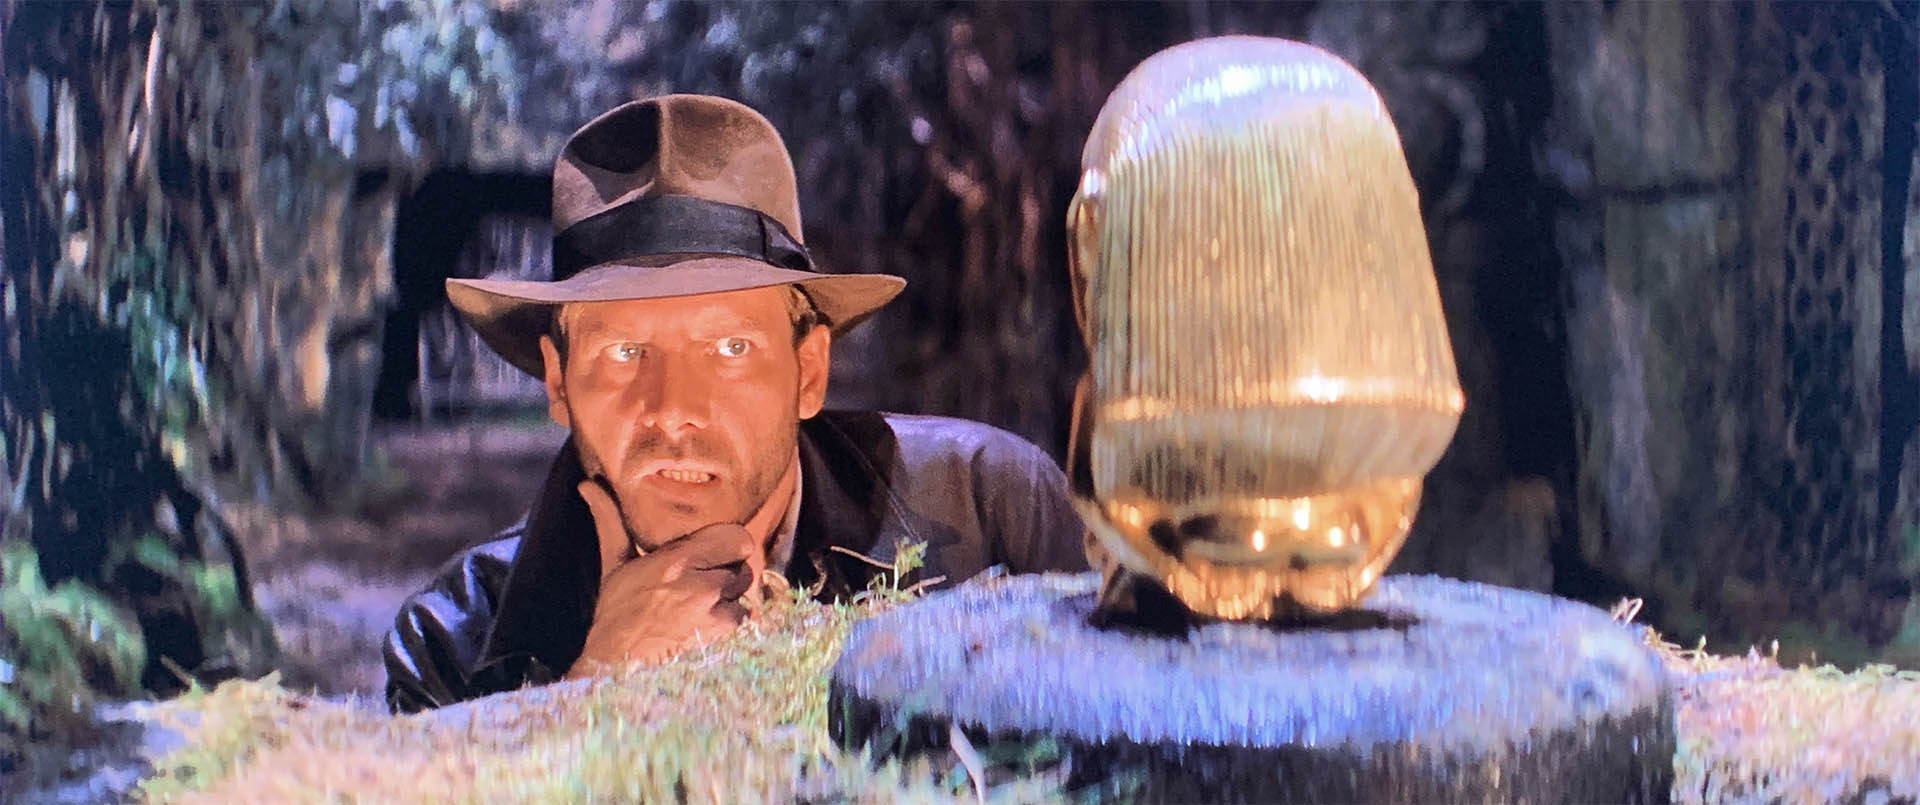 indiana jones and the raiders of the lost ark 4k blu-ray still 3